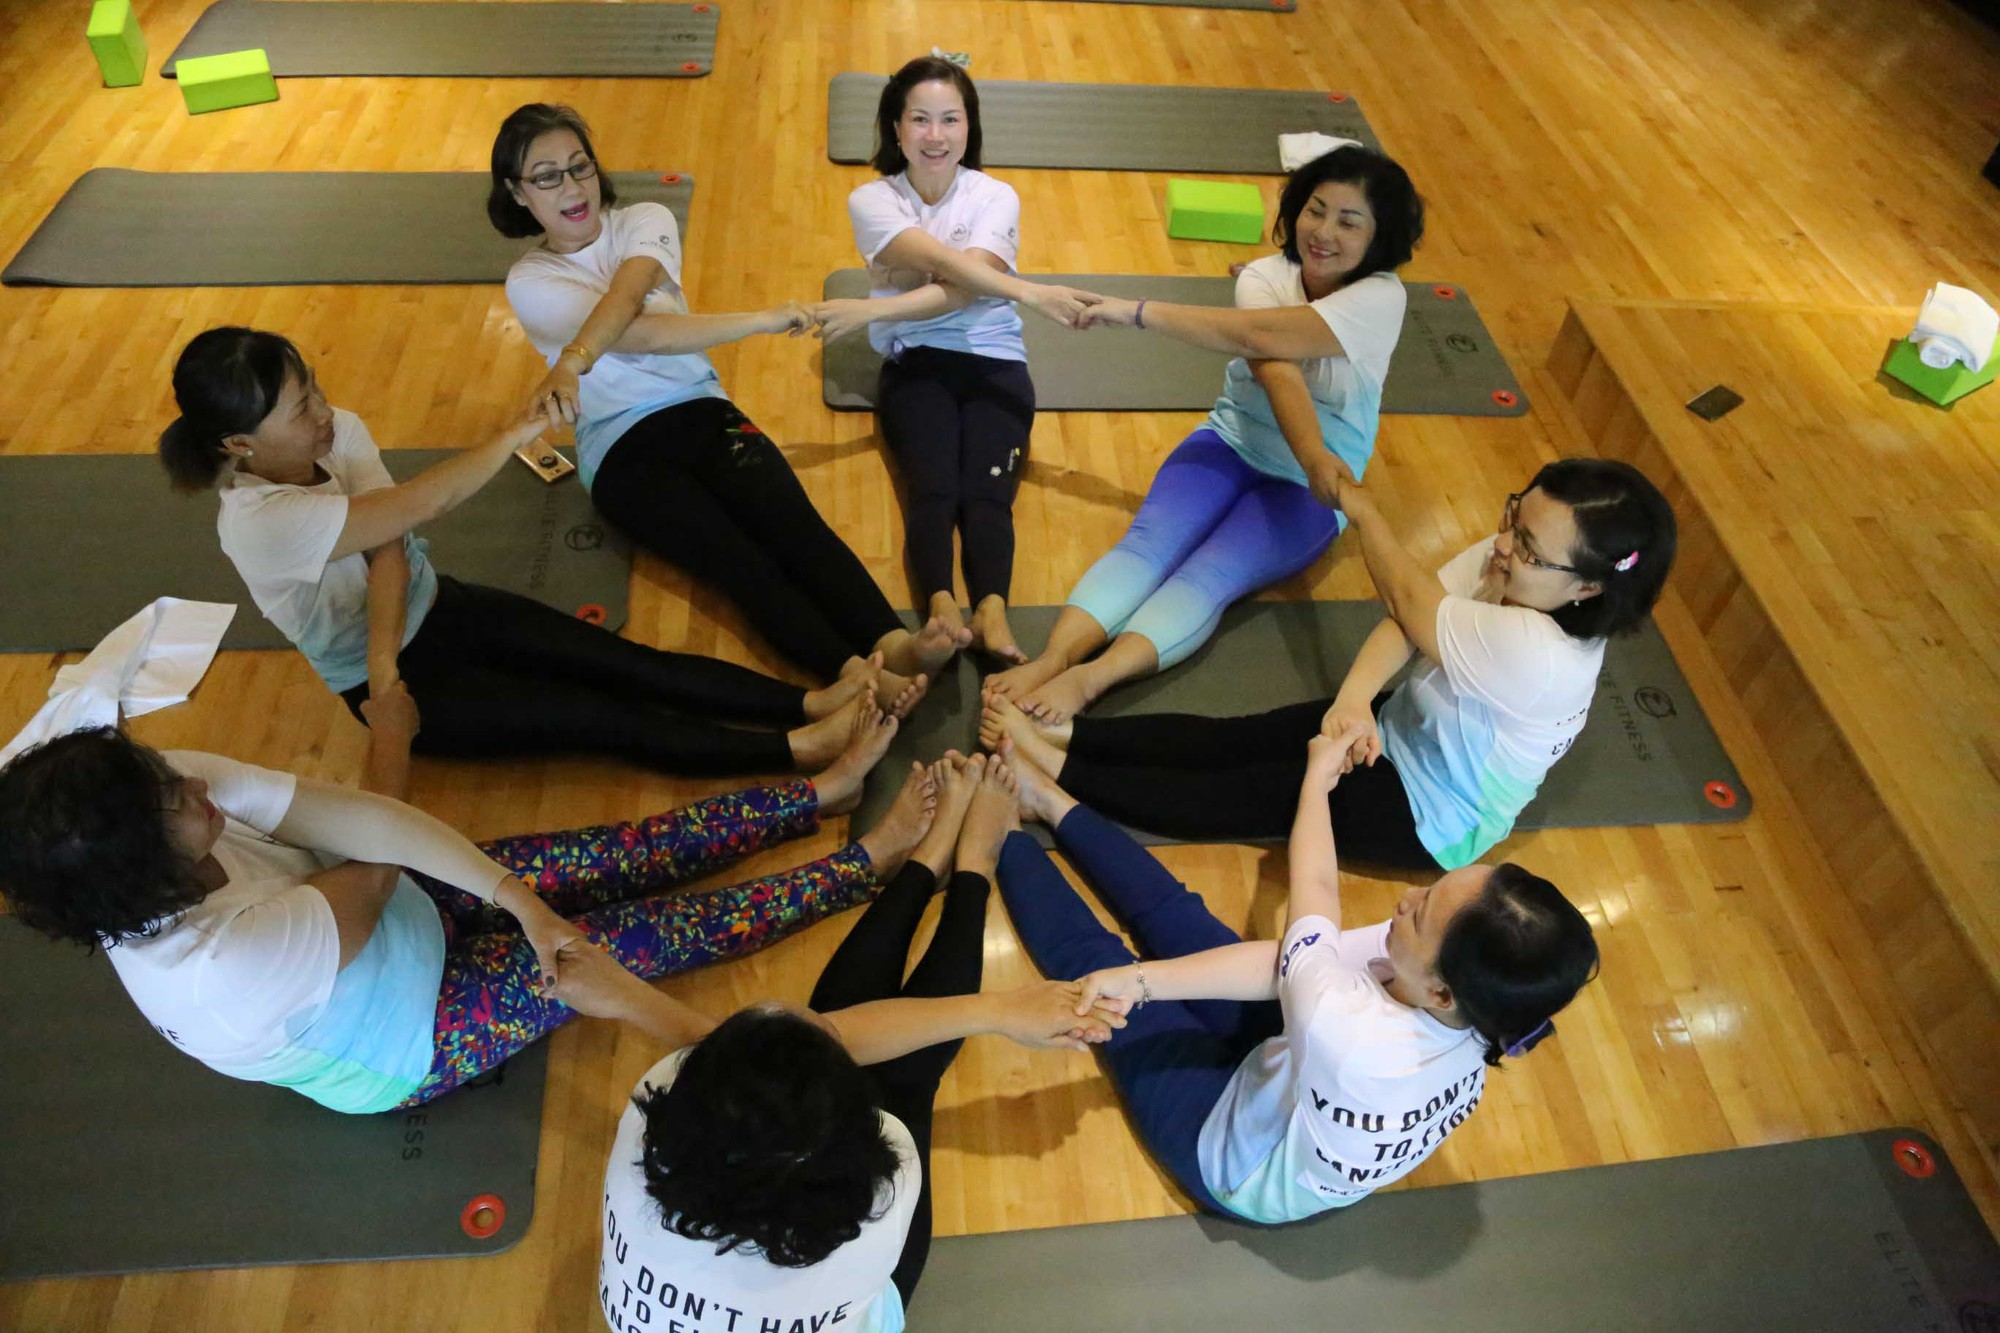 Patients join hands to fight cancer. Photo: Salt Cancer Initiative